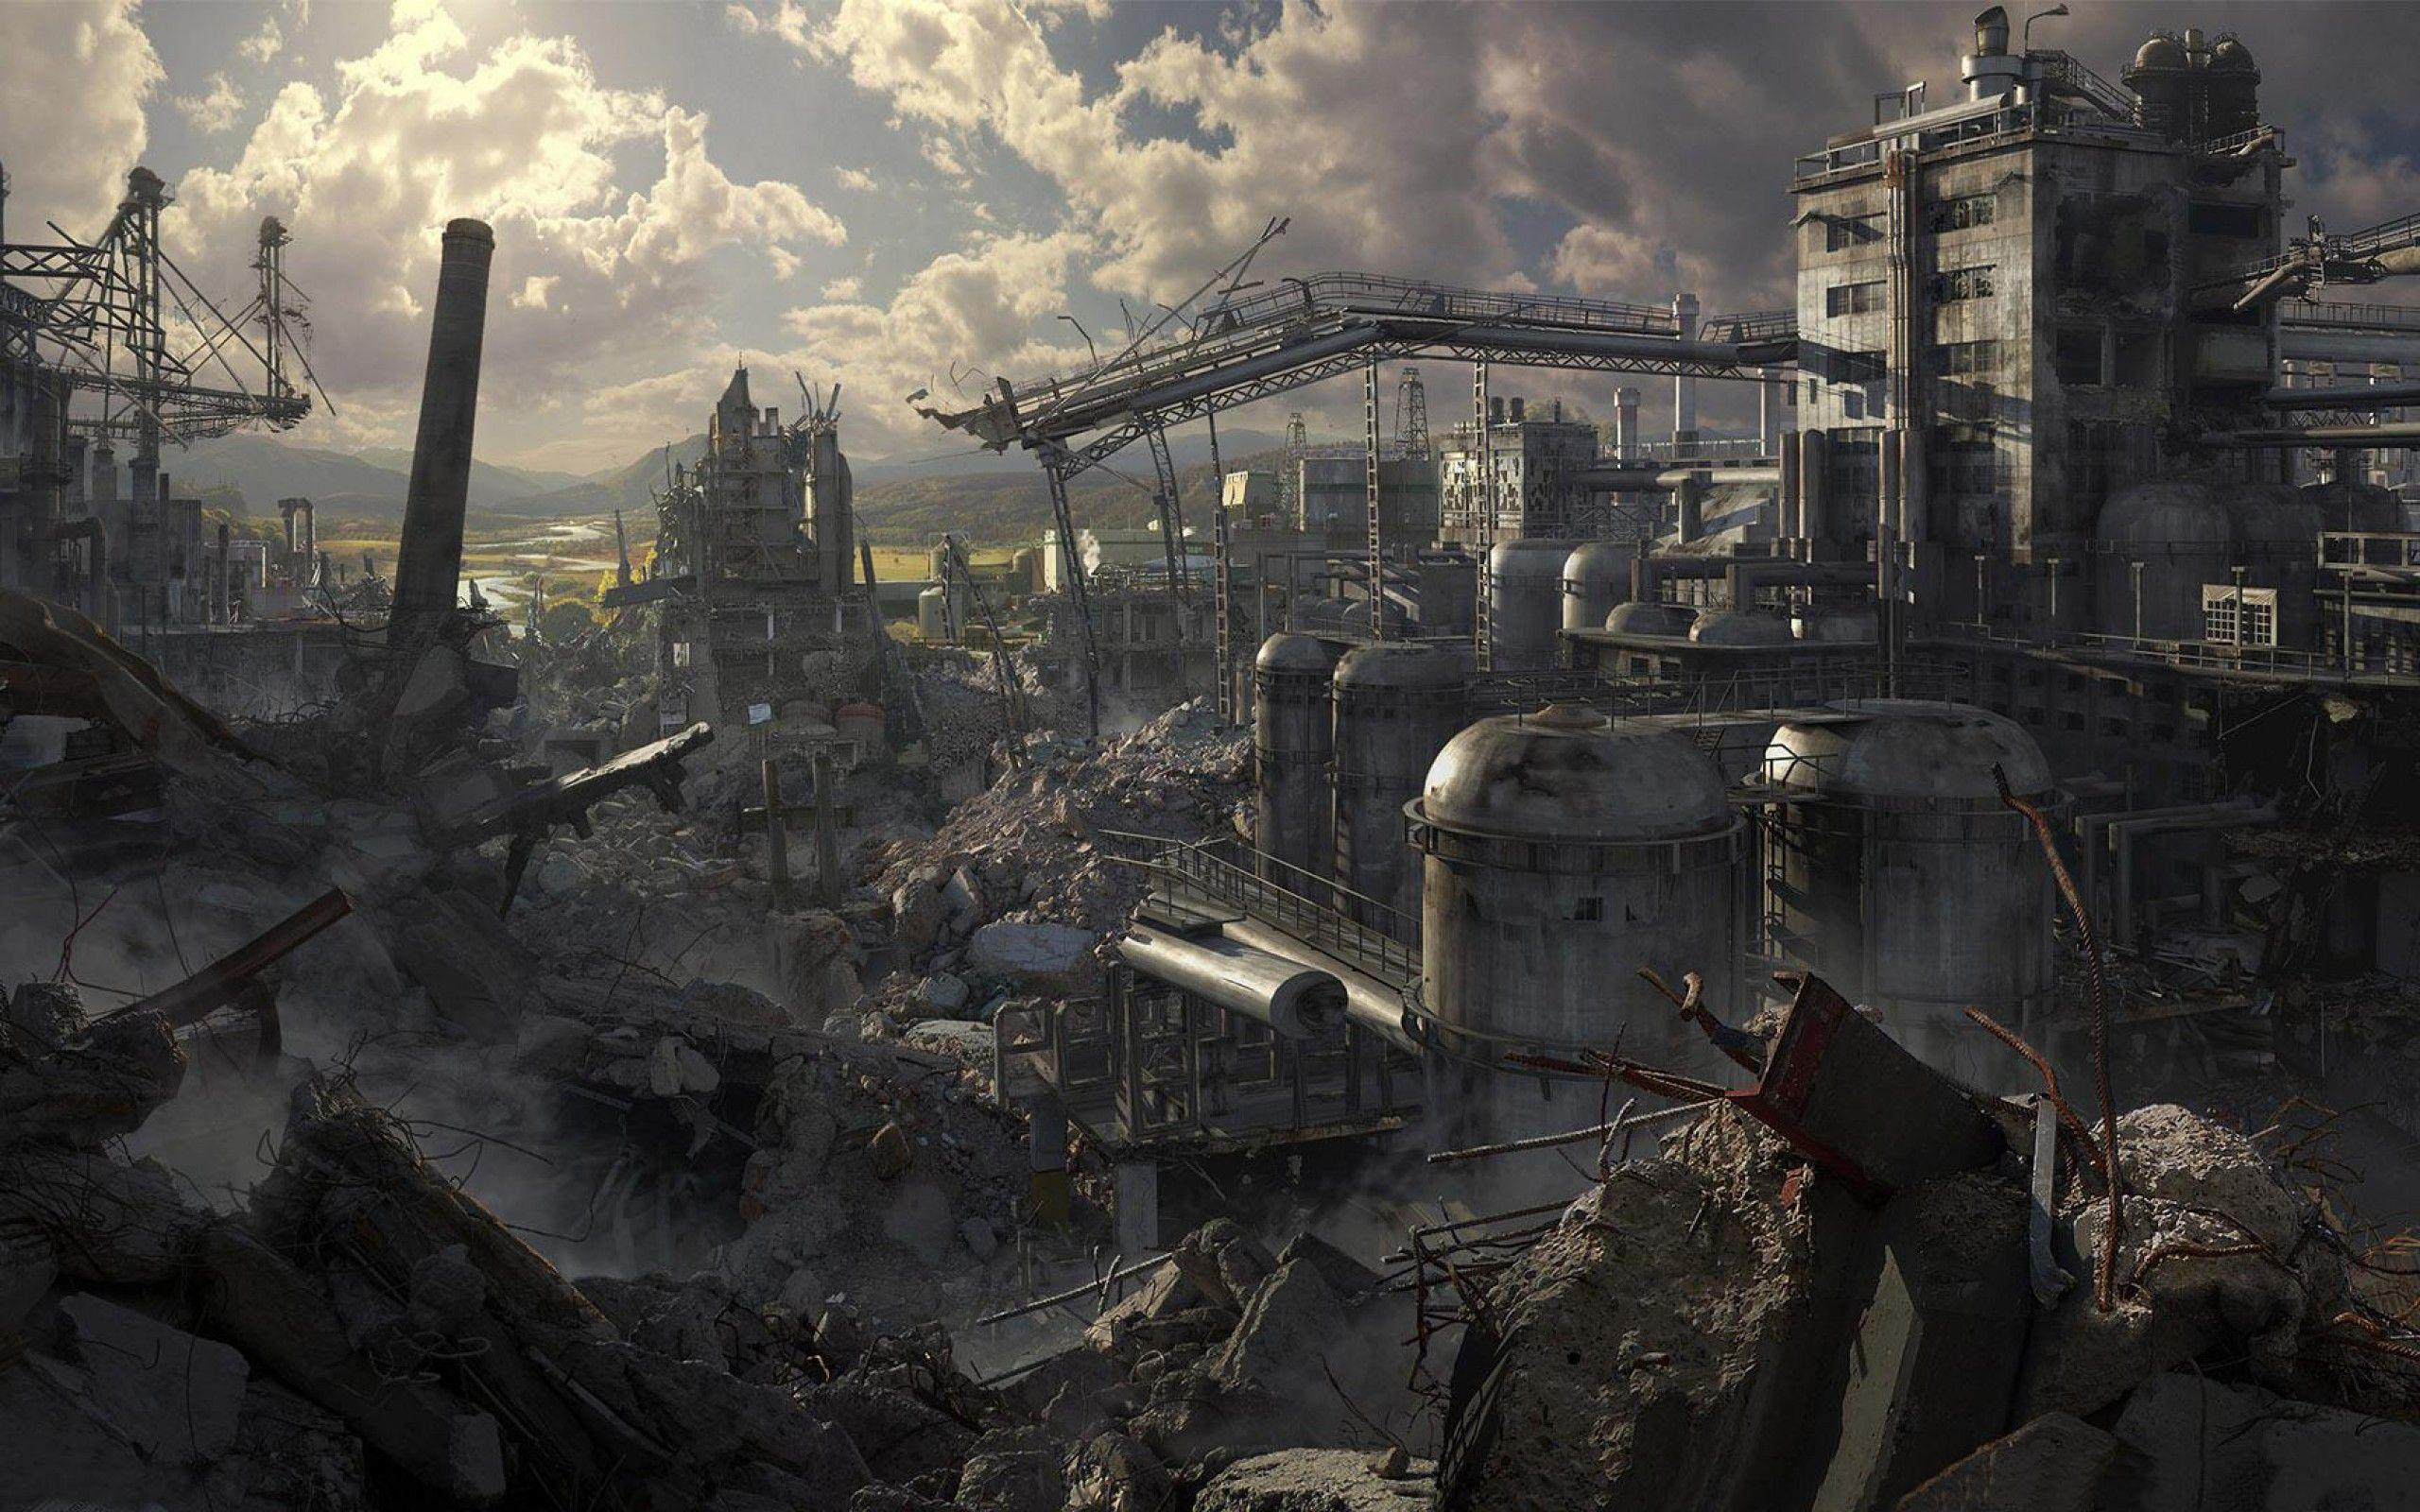 A destoryed and conquered city